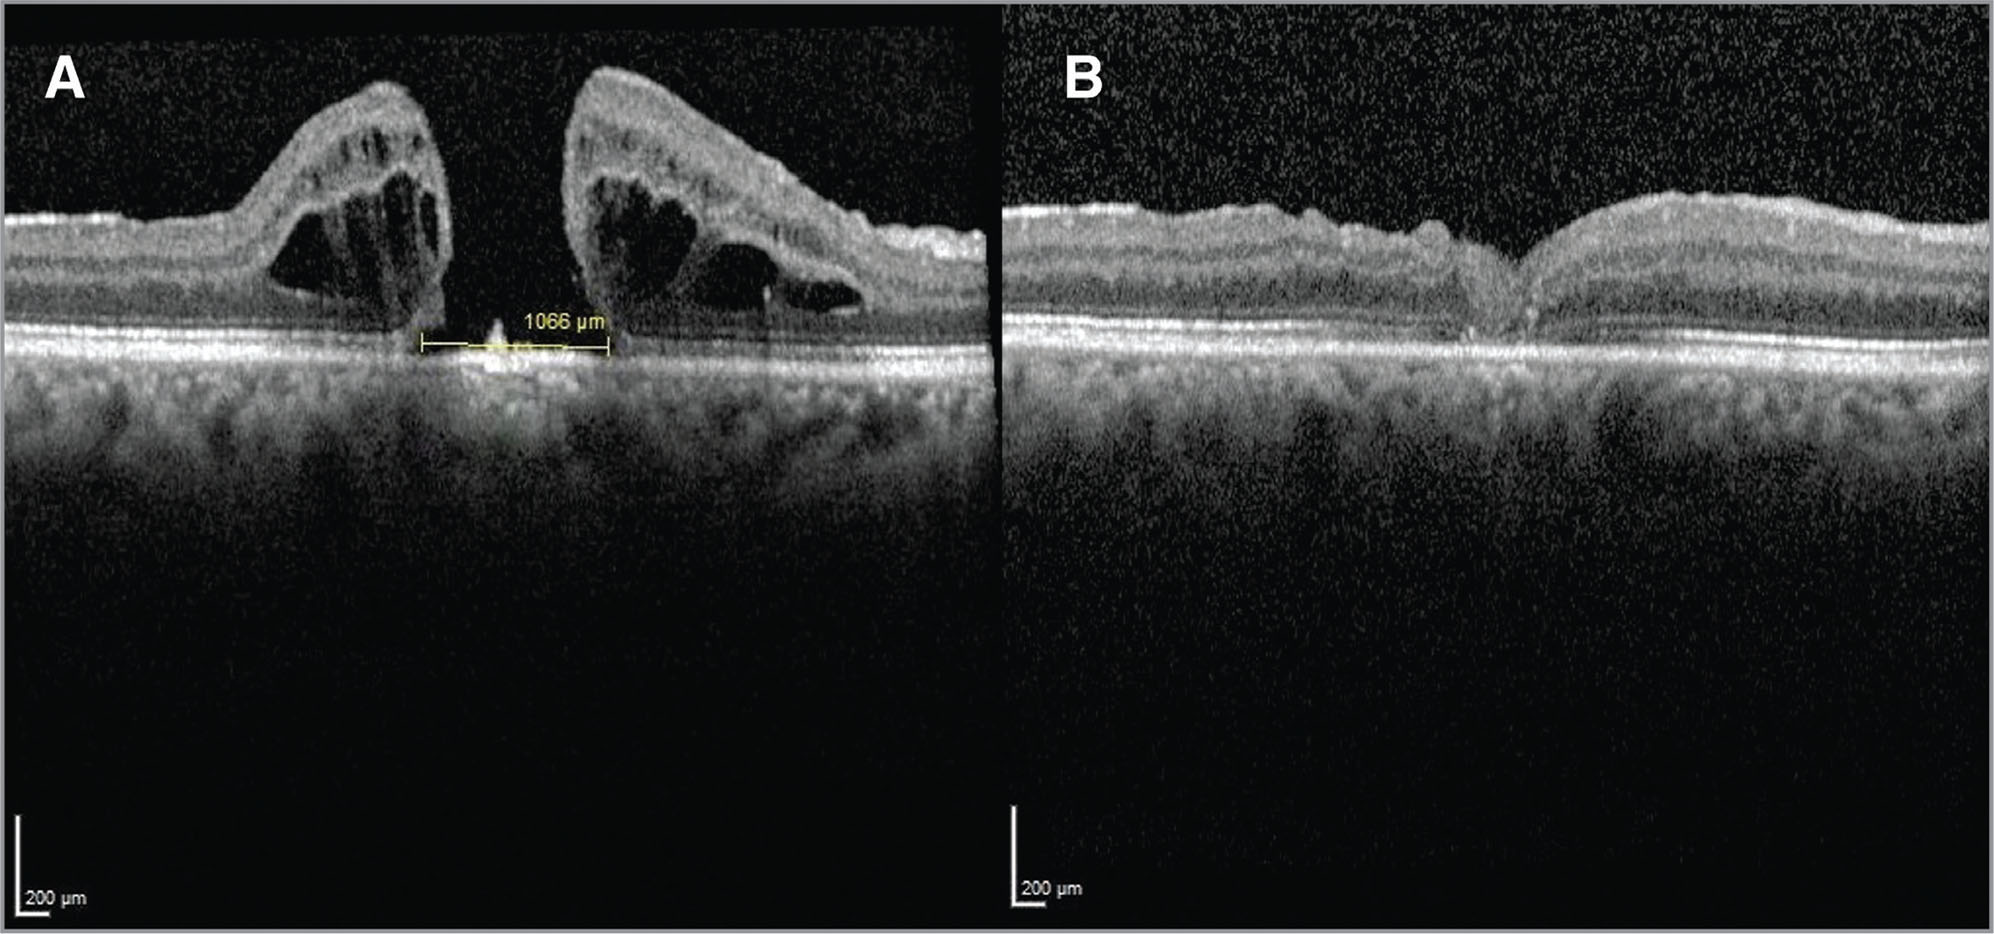 (A, B) The preoperative and postoperative optical coherence tomography sections of a 73-year-old patient with persistent macular hole. Preoperative base diameter was 1,066 μm.